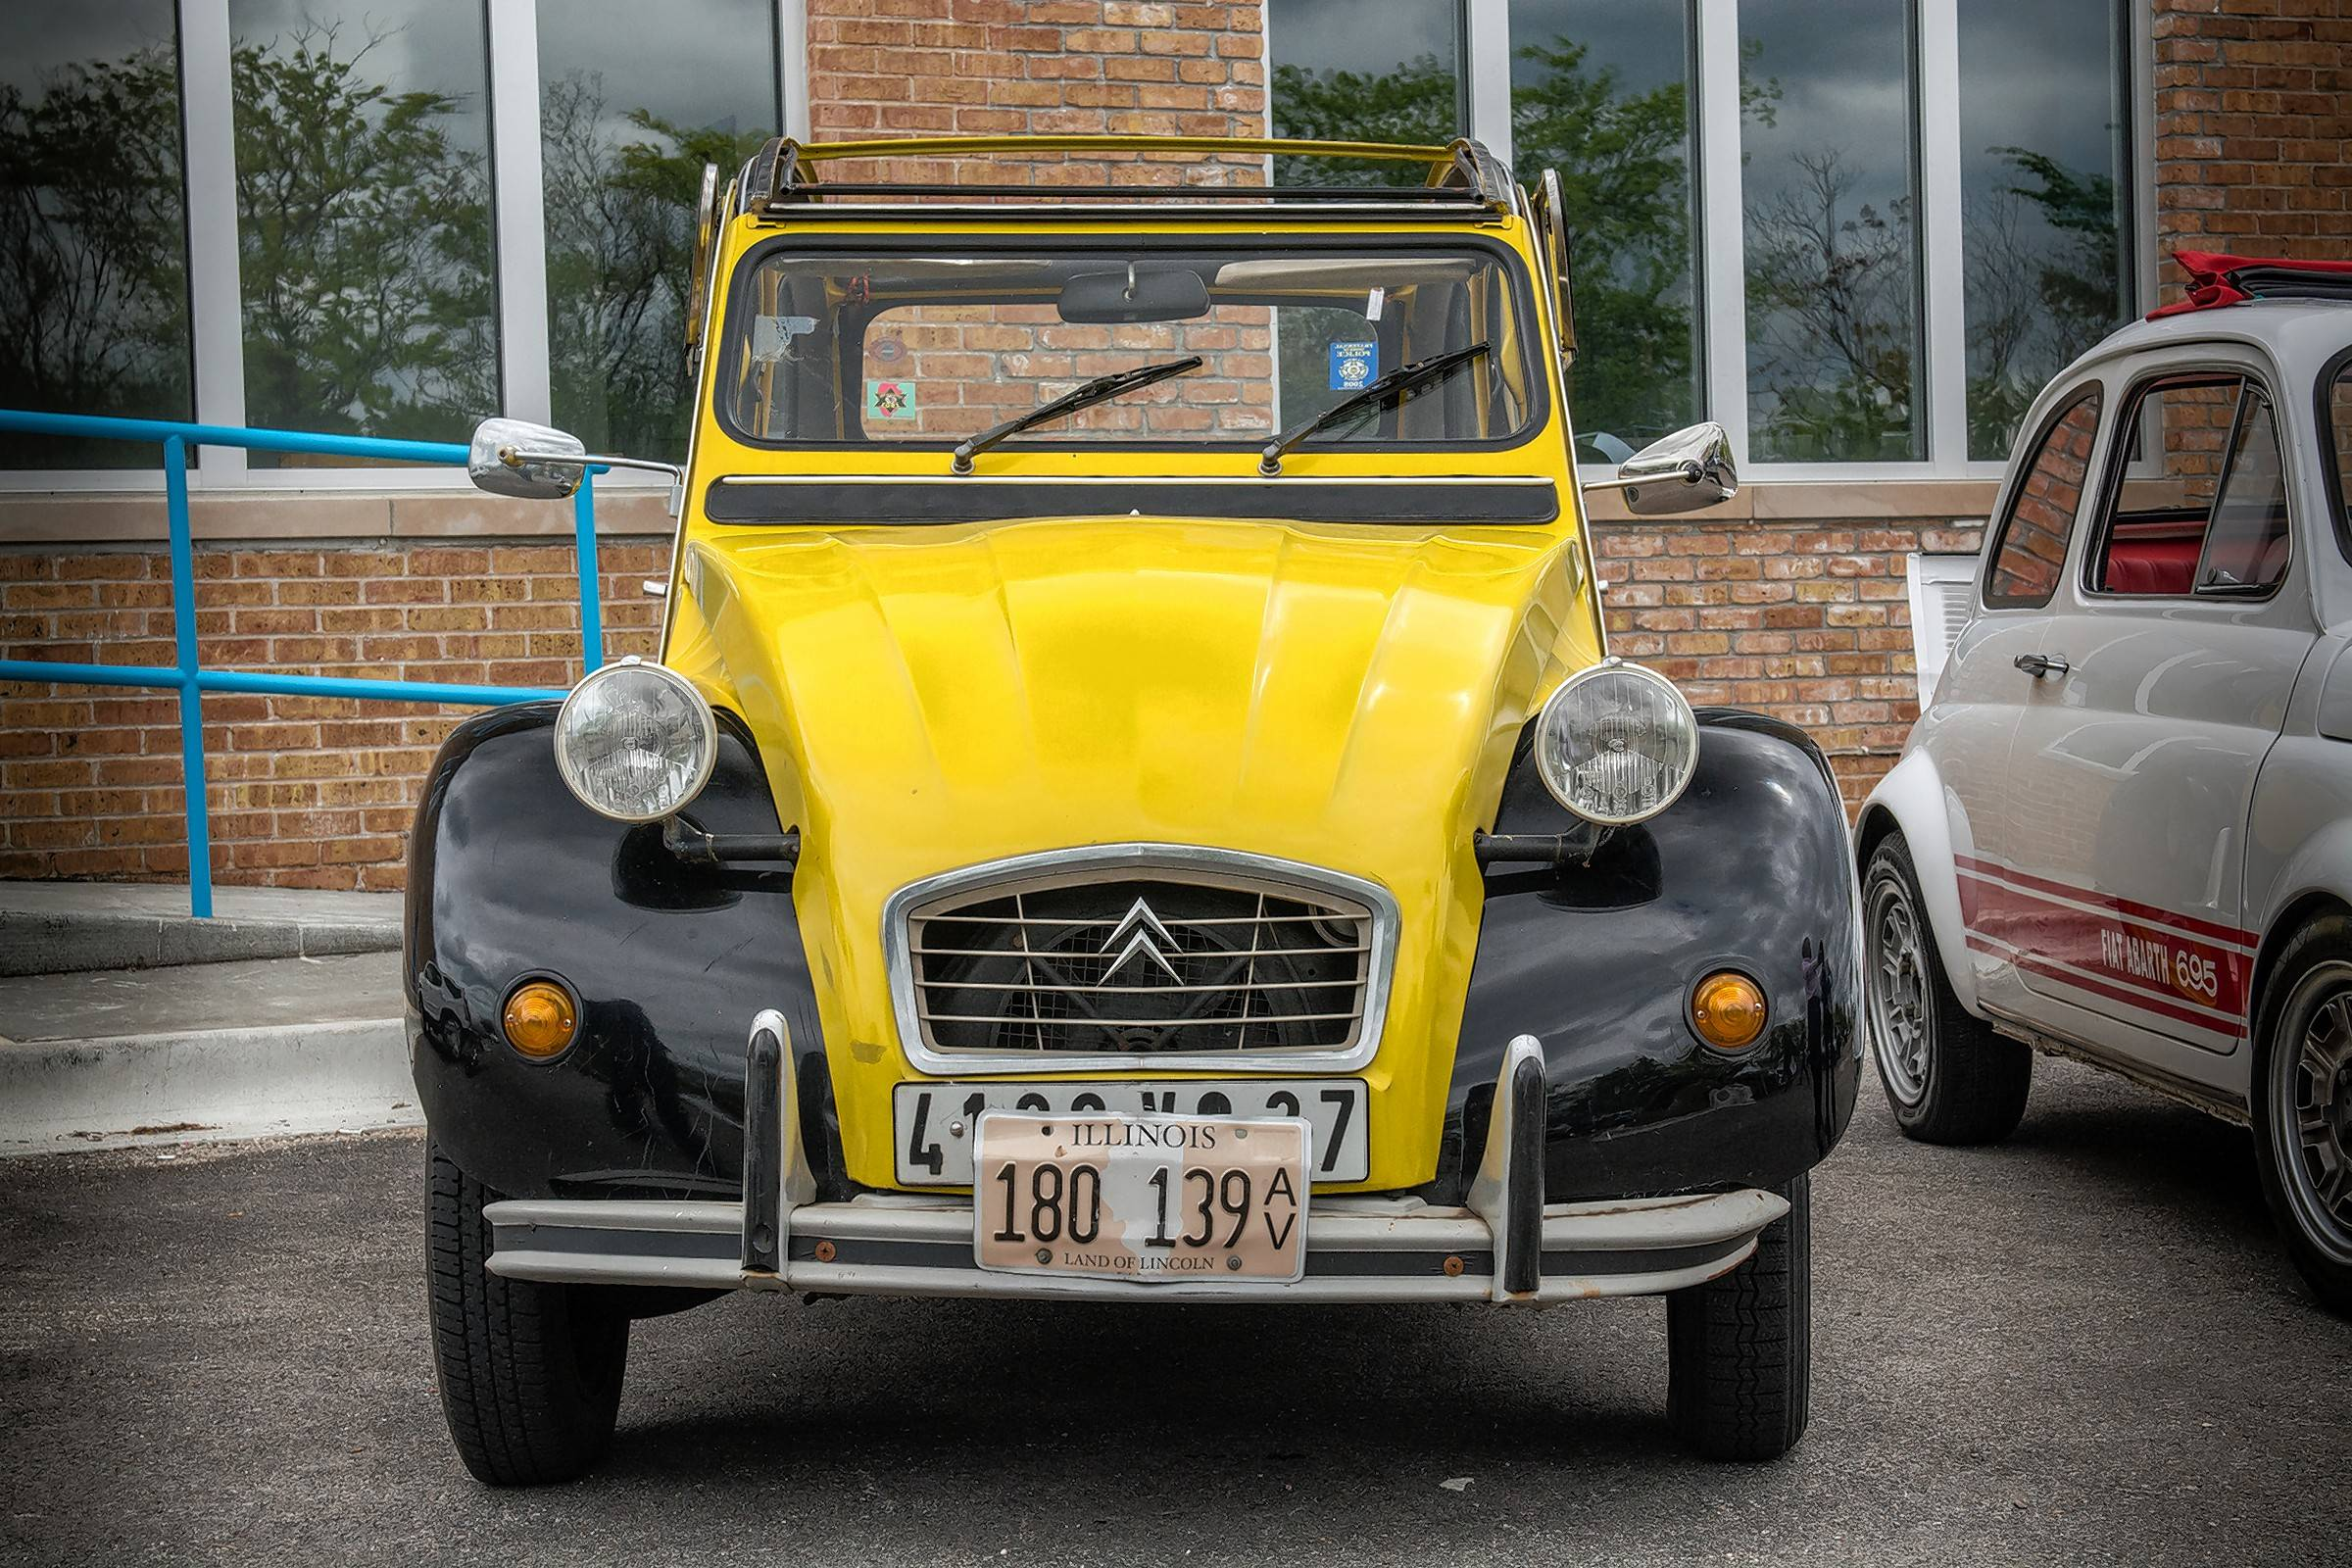 The 1976 Citroen 2CV features two-tone, Art-Deco inspired yellow and black paint.